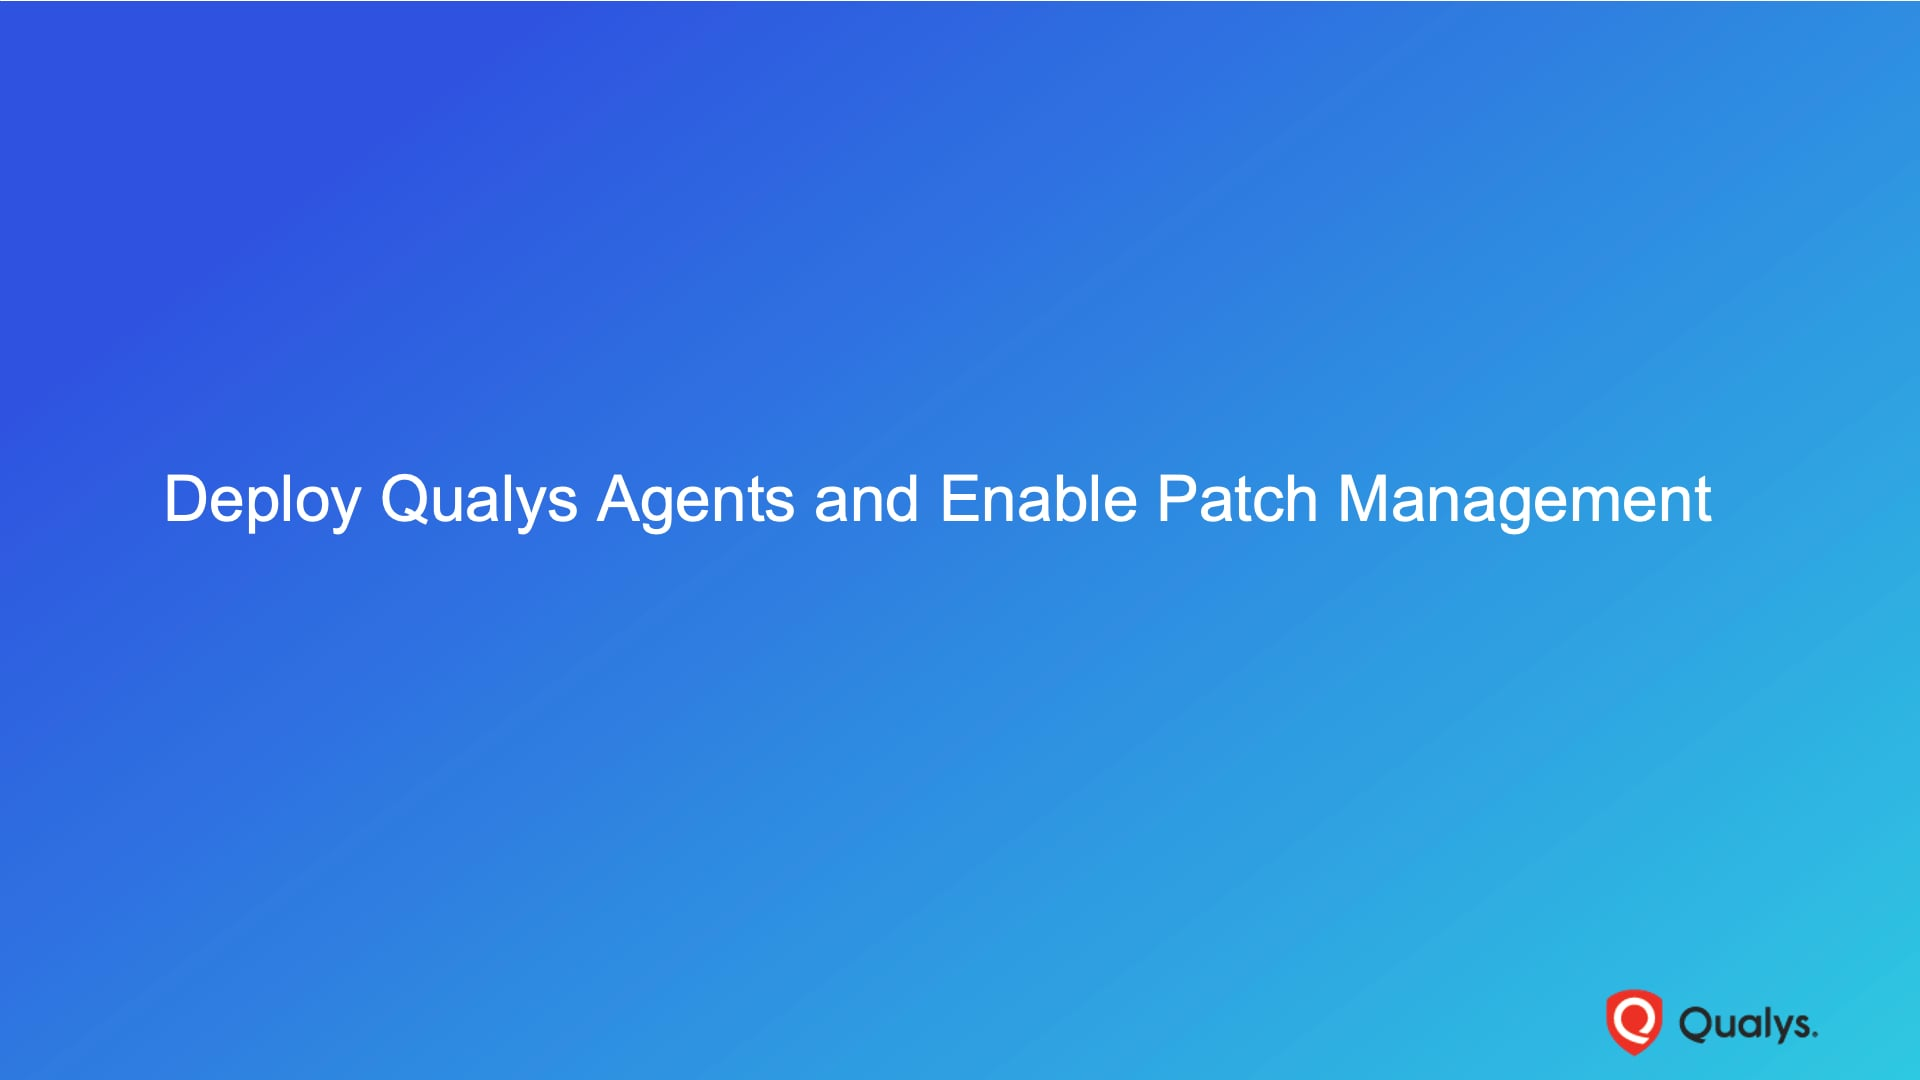 Deploy Qualys Agents and Enable Patch Management